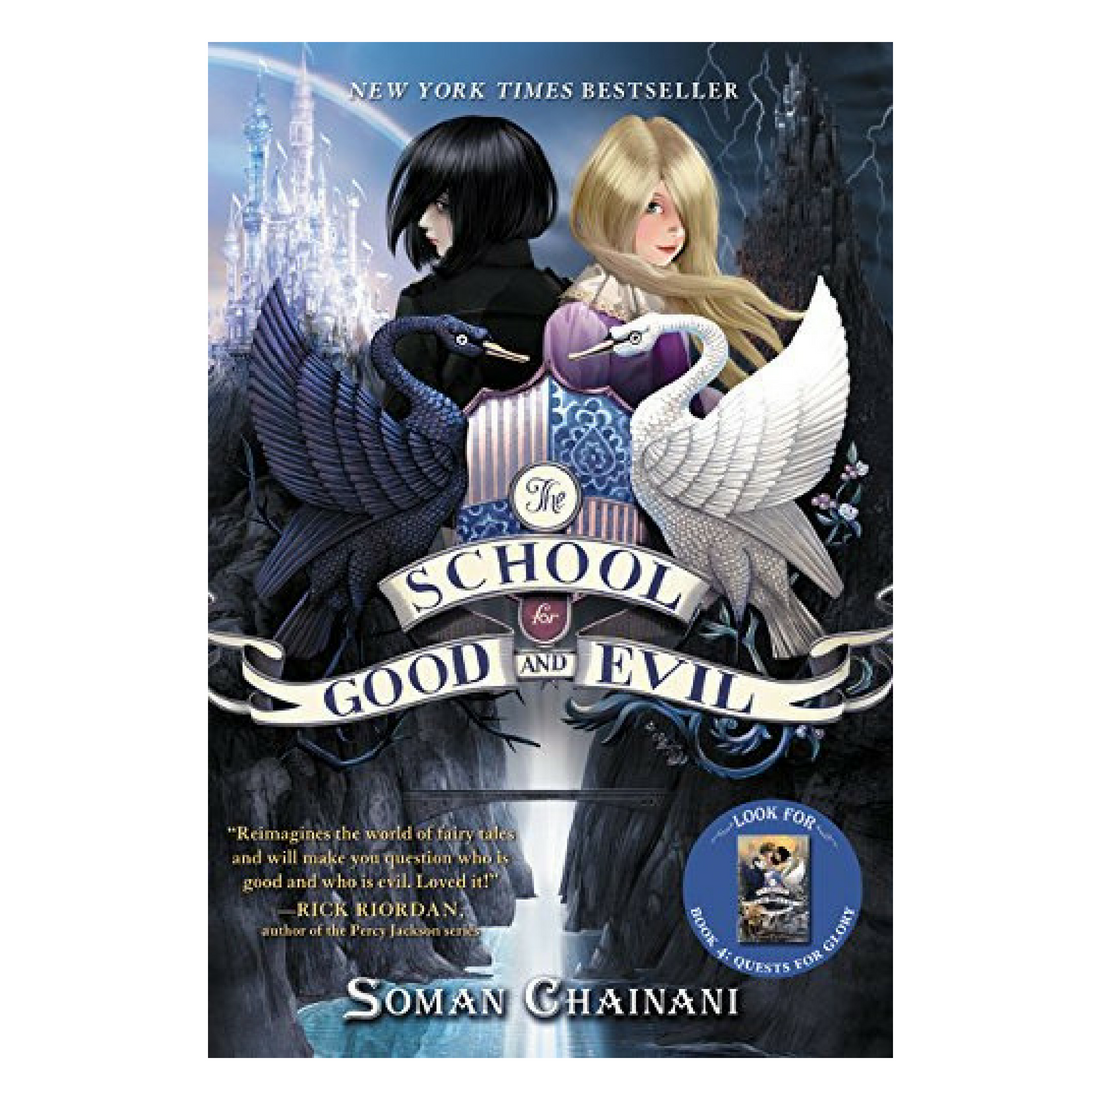 The School for Good and Evil - This title is on the top end of middle reader. In it we follow best friends Sophie and Agatha as they become students at their respective schools - the School for Good and the School for Evil. Agatha and Sophie's fortunes end up being reversed as they unwittingly end up at each other's schools. Each girl falters and then adjusts to training in fields that initially appear to be the opposite of their natural talents, with Sophie taking courses such as Uglification and Henchman training while Agatha struggles through Princess Etiquette and Animal Communication amongst flawless, beautiful peers. The book contains violence and Sophie and Agatha's friendship is a complicated one. Even so, following the two girls as they find out who and what is really good and who and what is really evil is a thrilling ride.